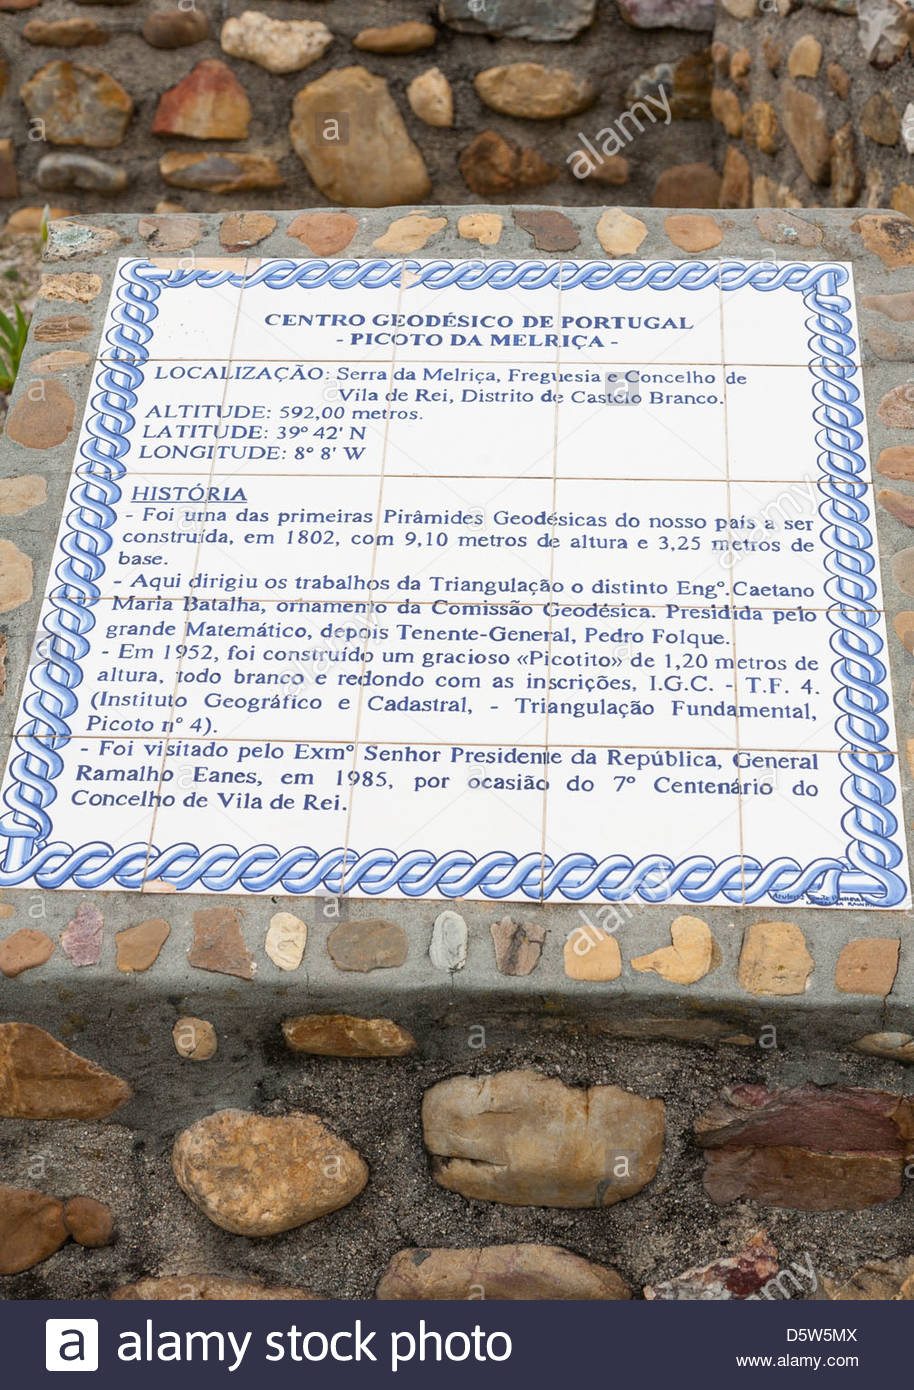 Painted tiles providing information at Vila de Rei the Geodesic centre of Portugal - Stock Image